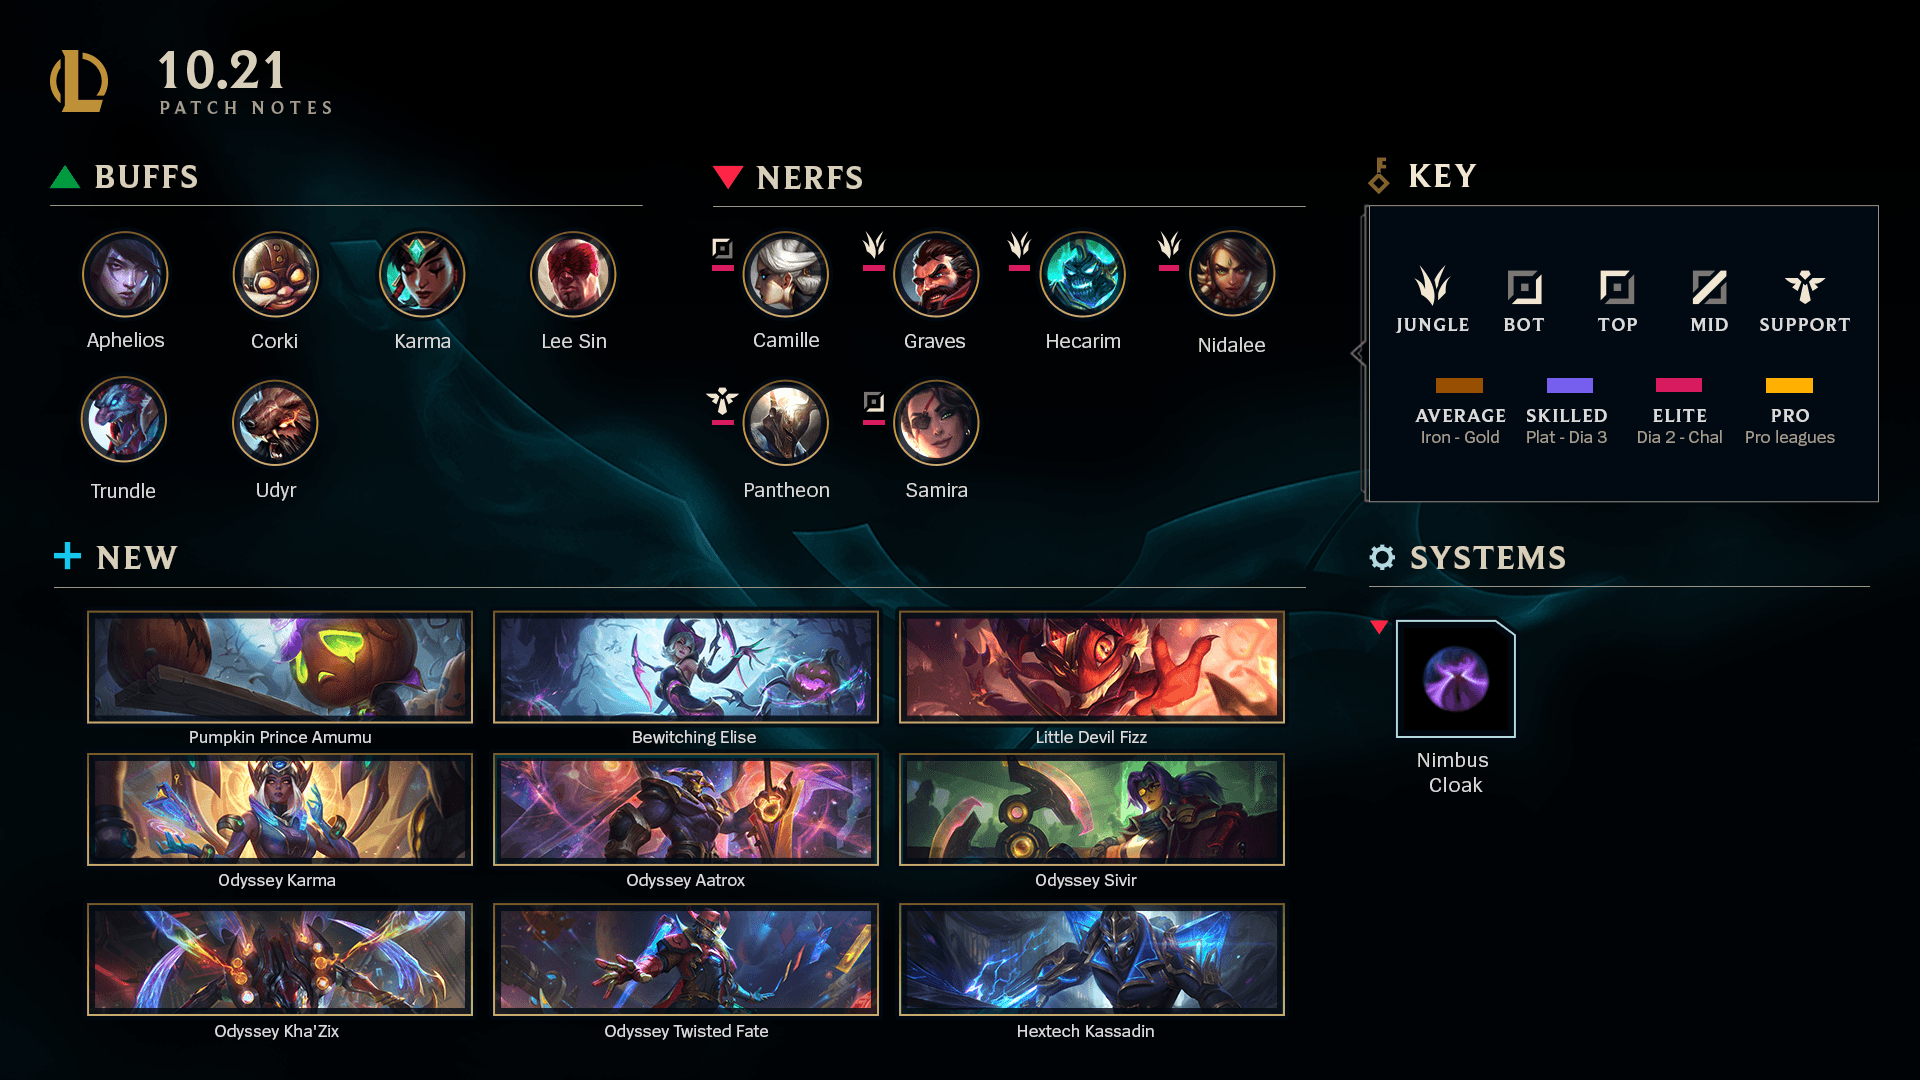 League of Legends Patch Notes 10.21 summary. (Image: Riot Games)